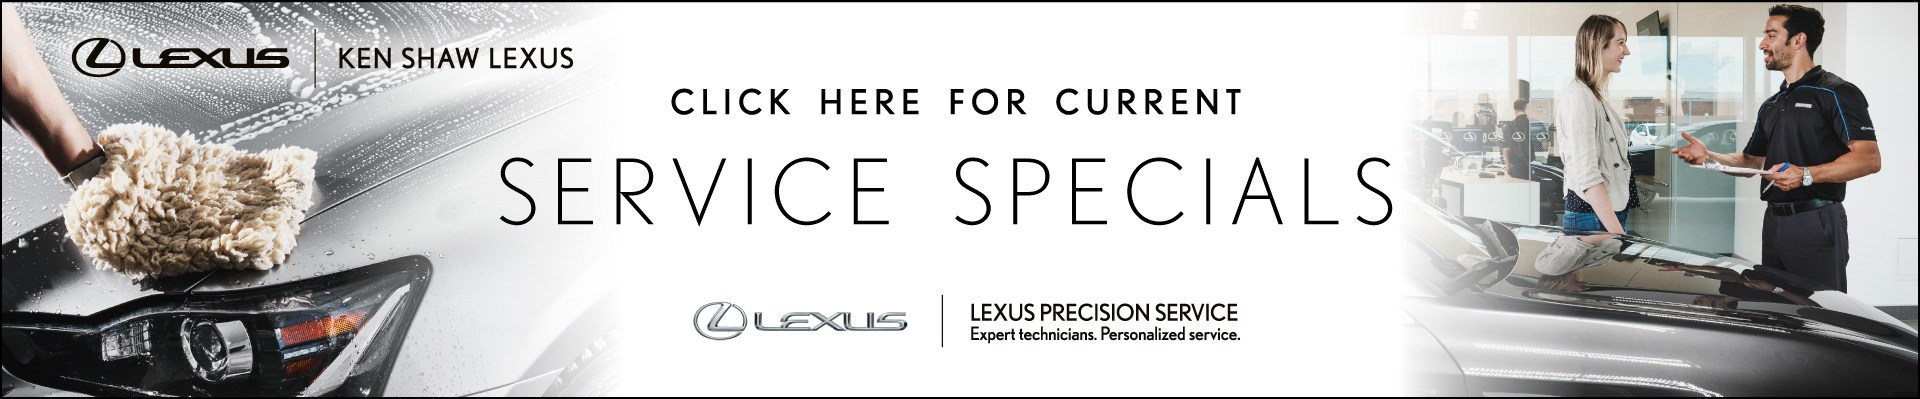 Lexus Service Repairs Maintenance specials, promotions and specials in Toronto, Ontario, GTA